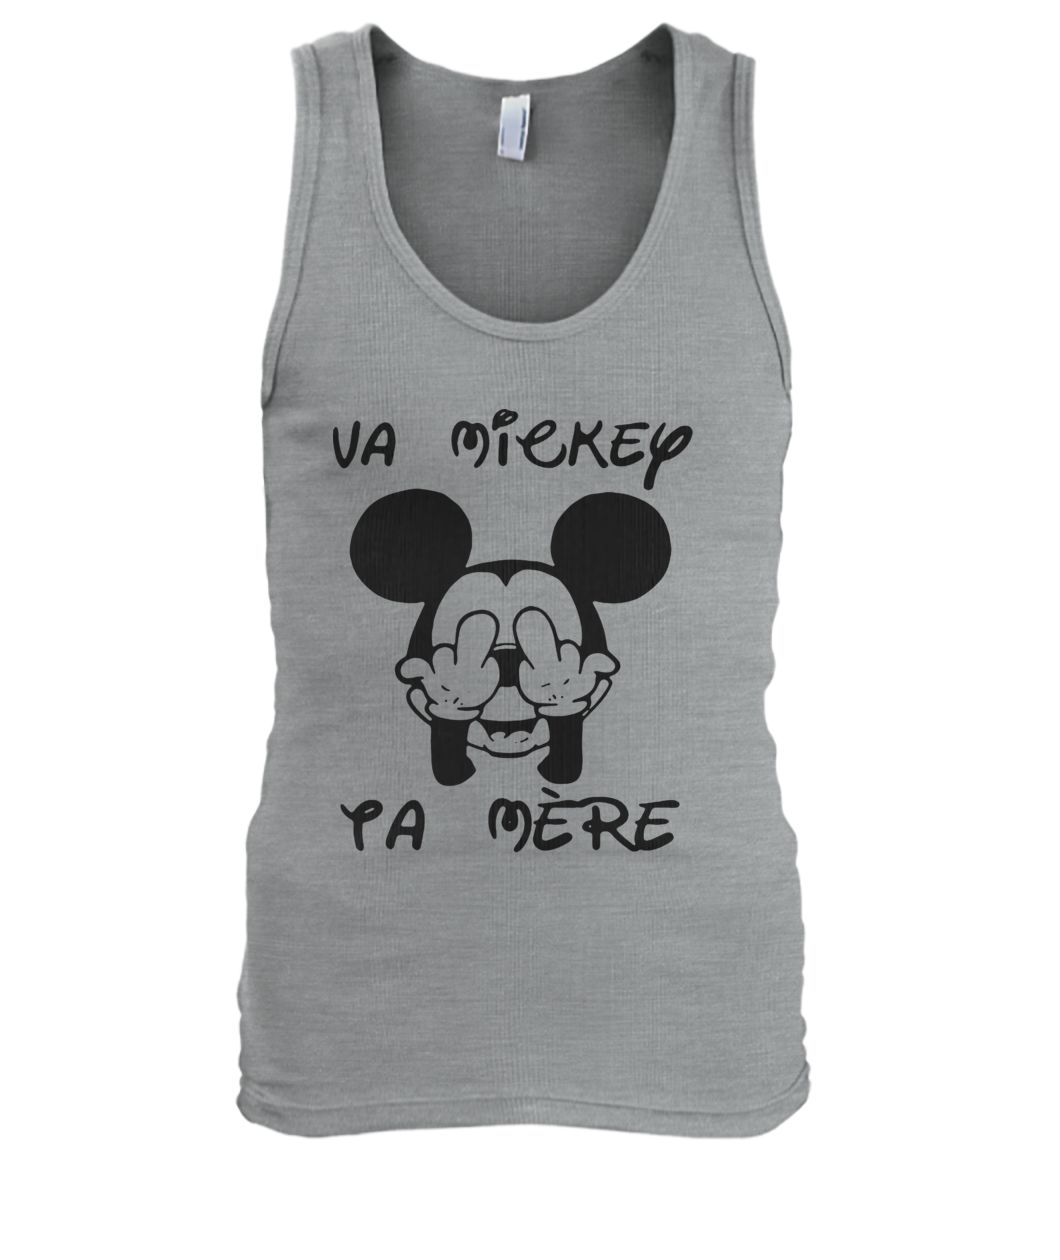 Fucking va mickey ta mere men's tank top